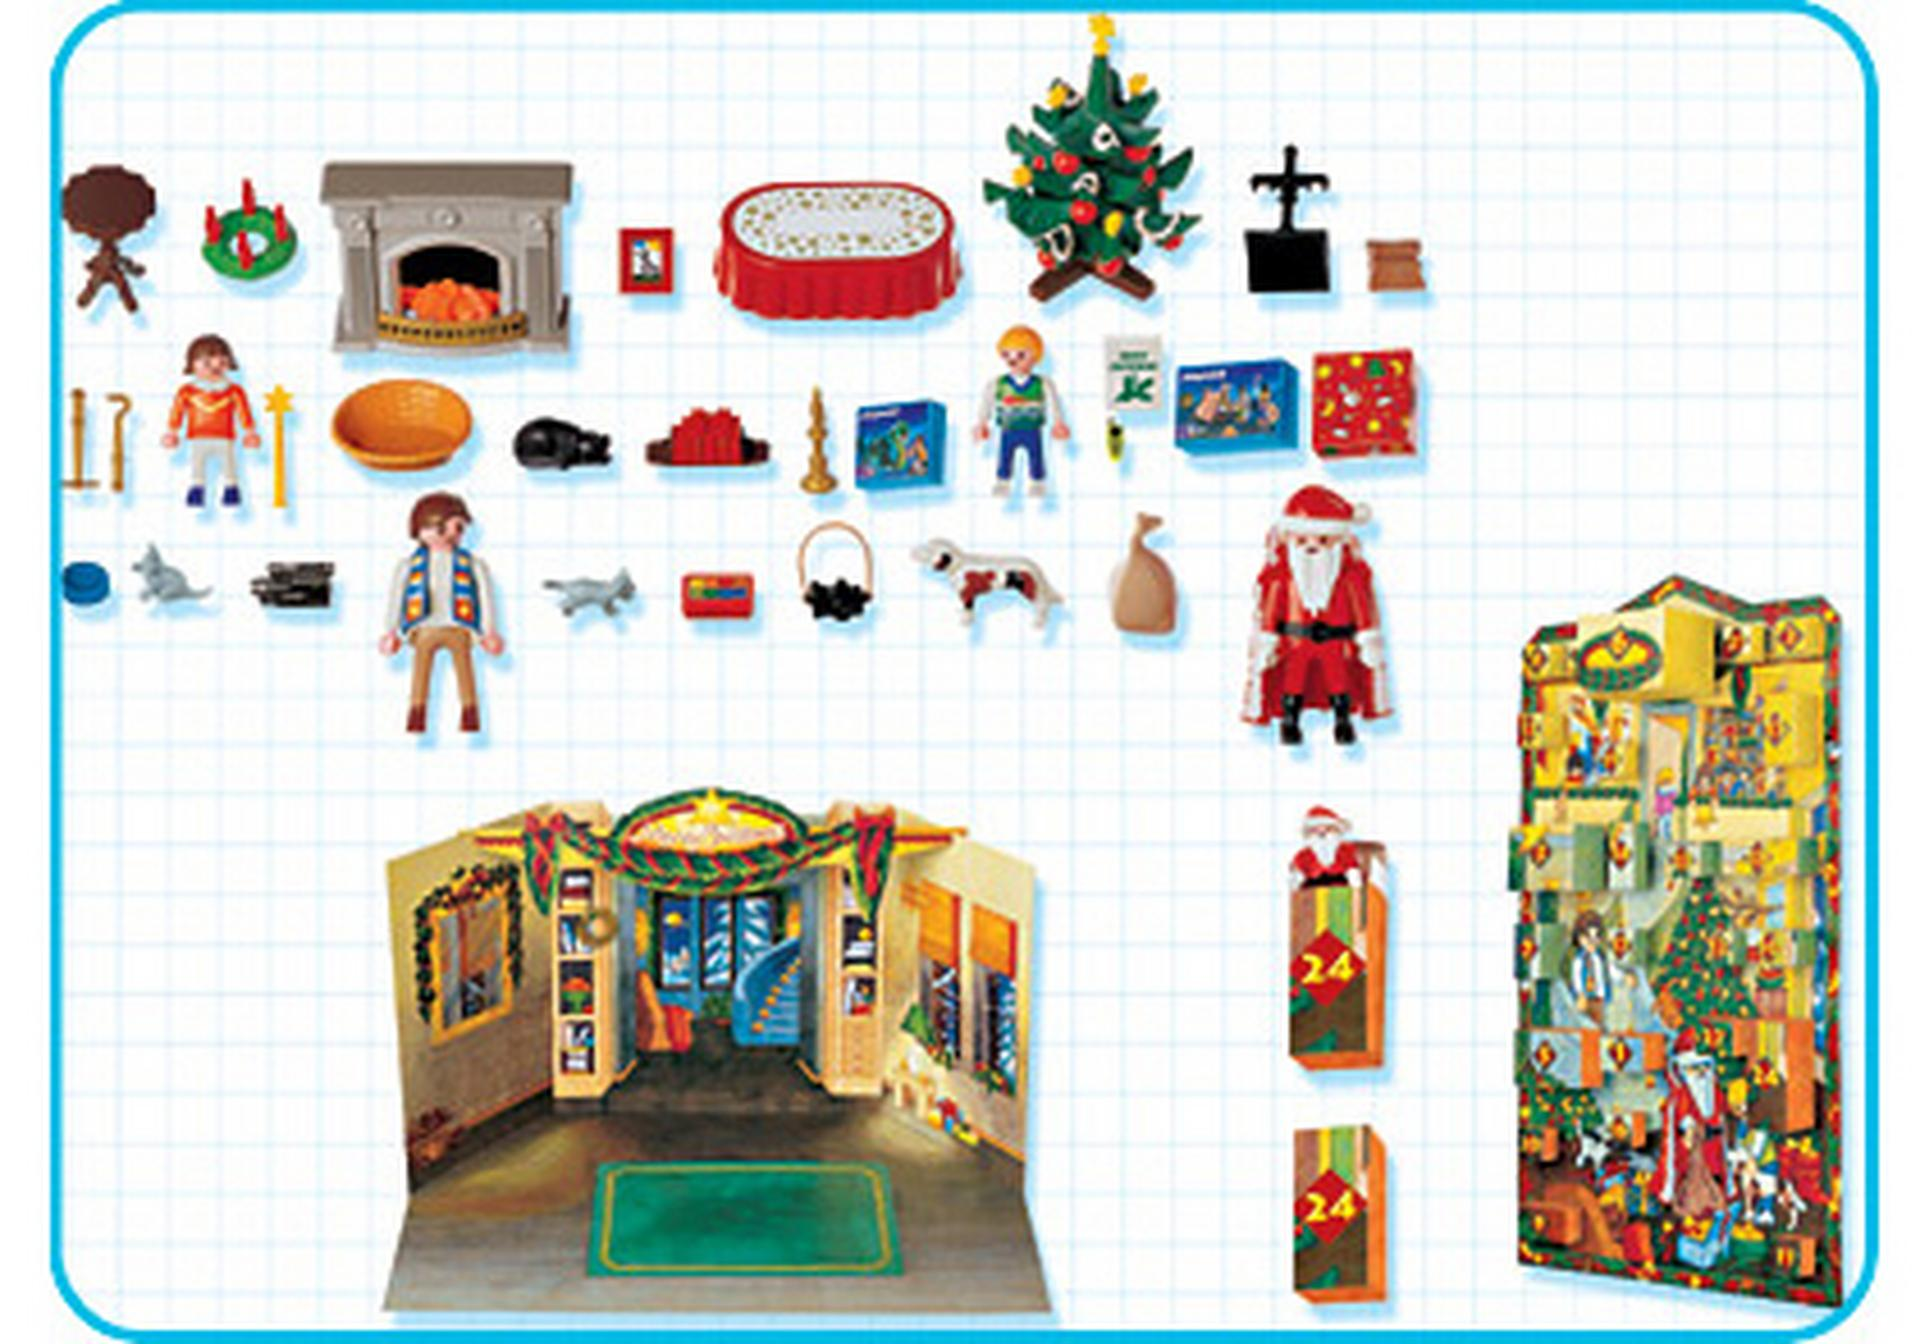 playmobile adventskalender playmobil adventskalender 2015. Black Bedroom Furniture Sets. Home Design Ideas